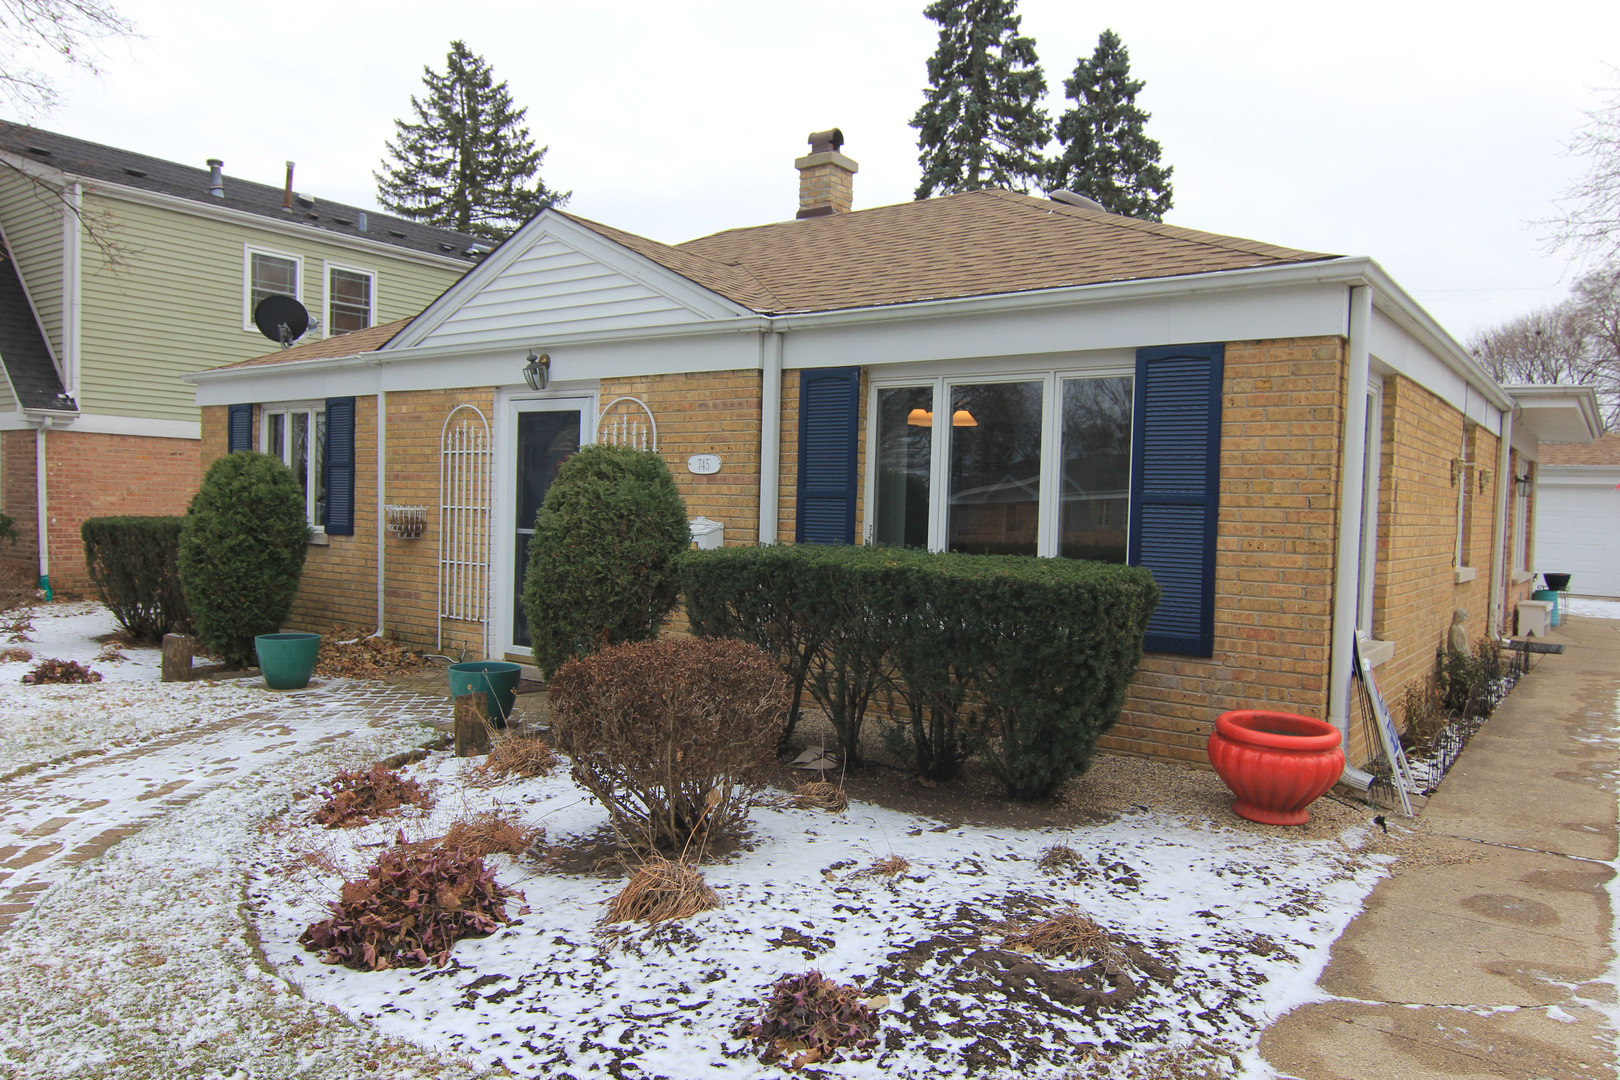 745 East Rockland Road, Libertyville IL 60048